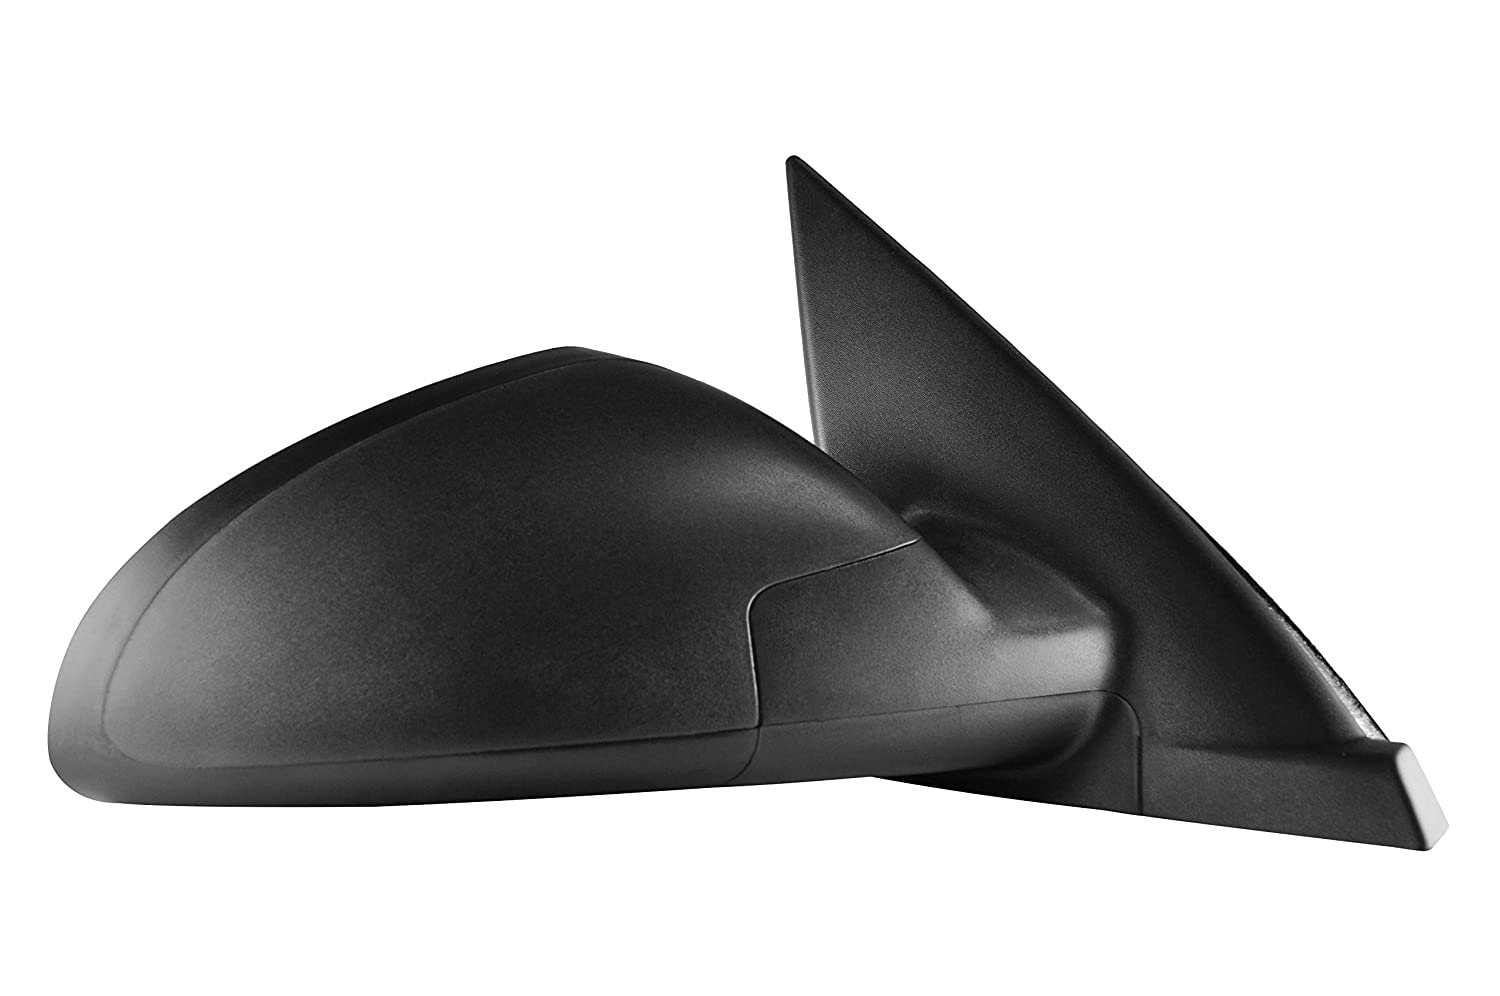 GM1321287 Passenger Side Textured Power Operated Non-Heated Side View Mirror for 2004-2008 Chevrolet Malibu